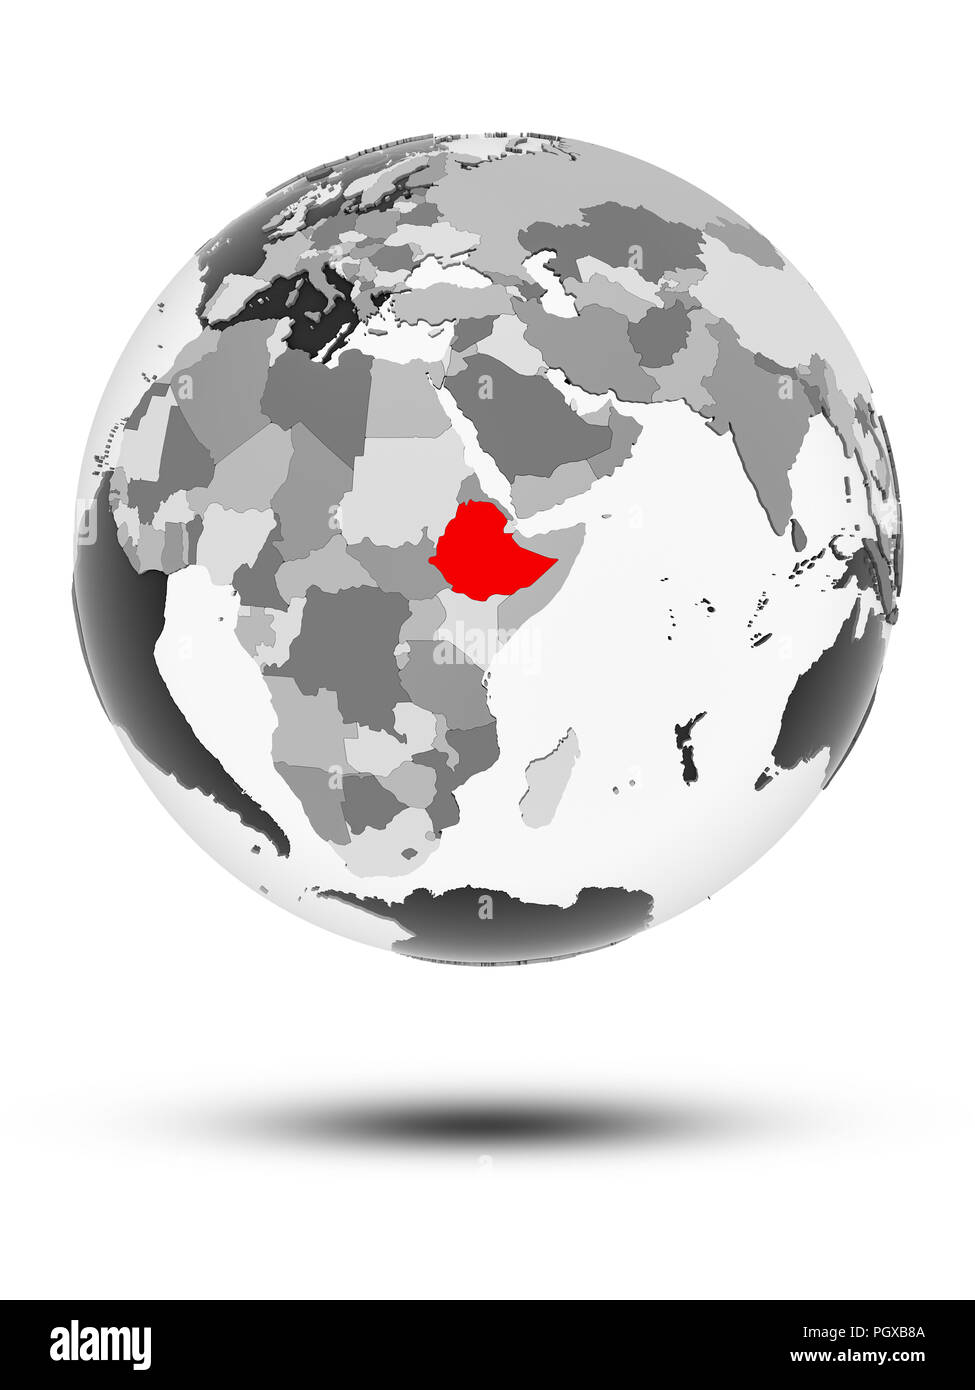 Ethiopia on globe with translucent oceans isolated on white background. 3D illustration. - Stock Image